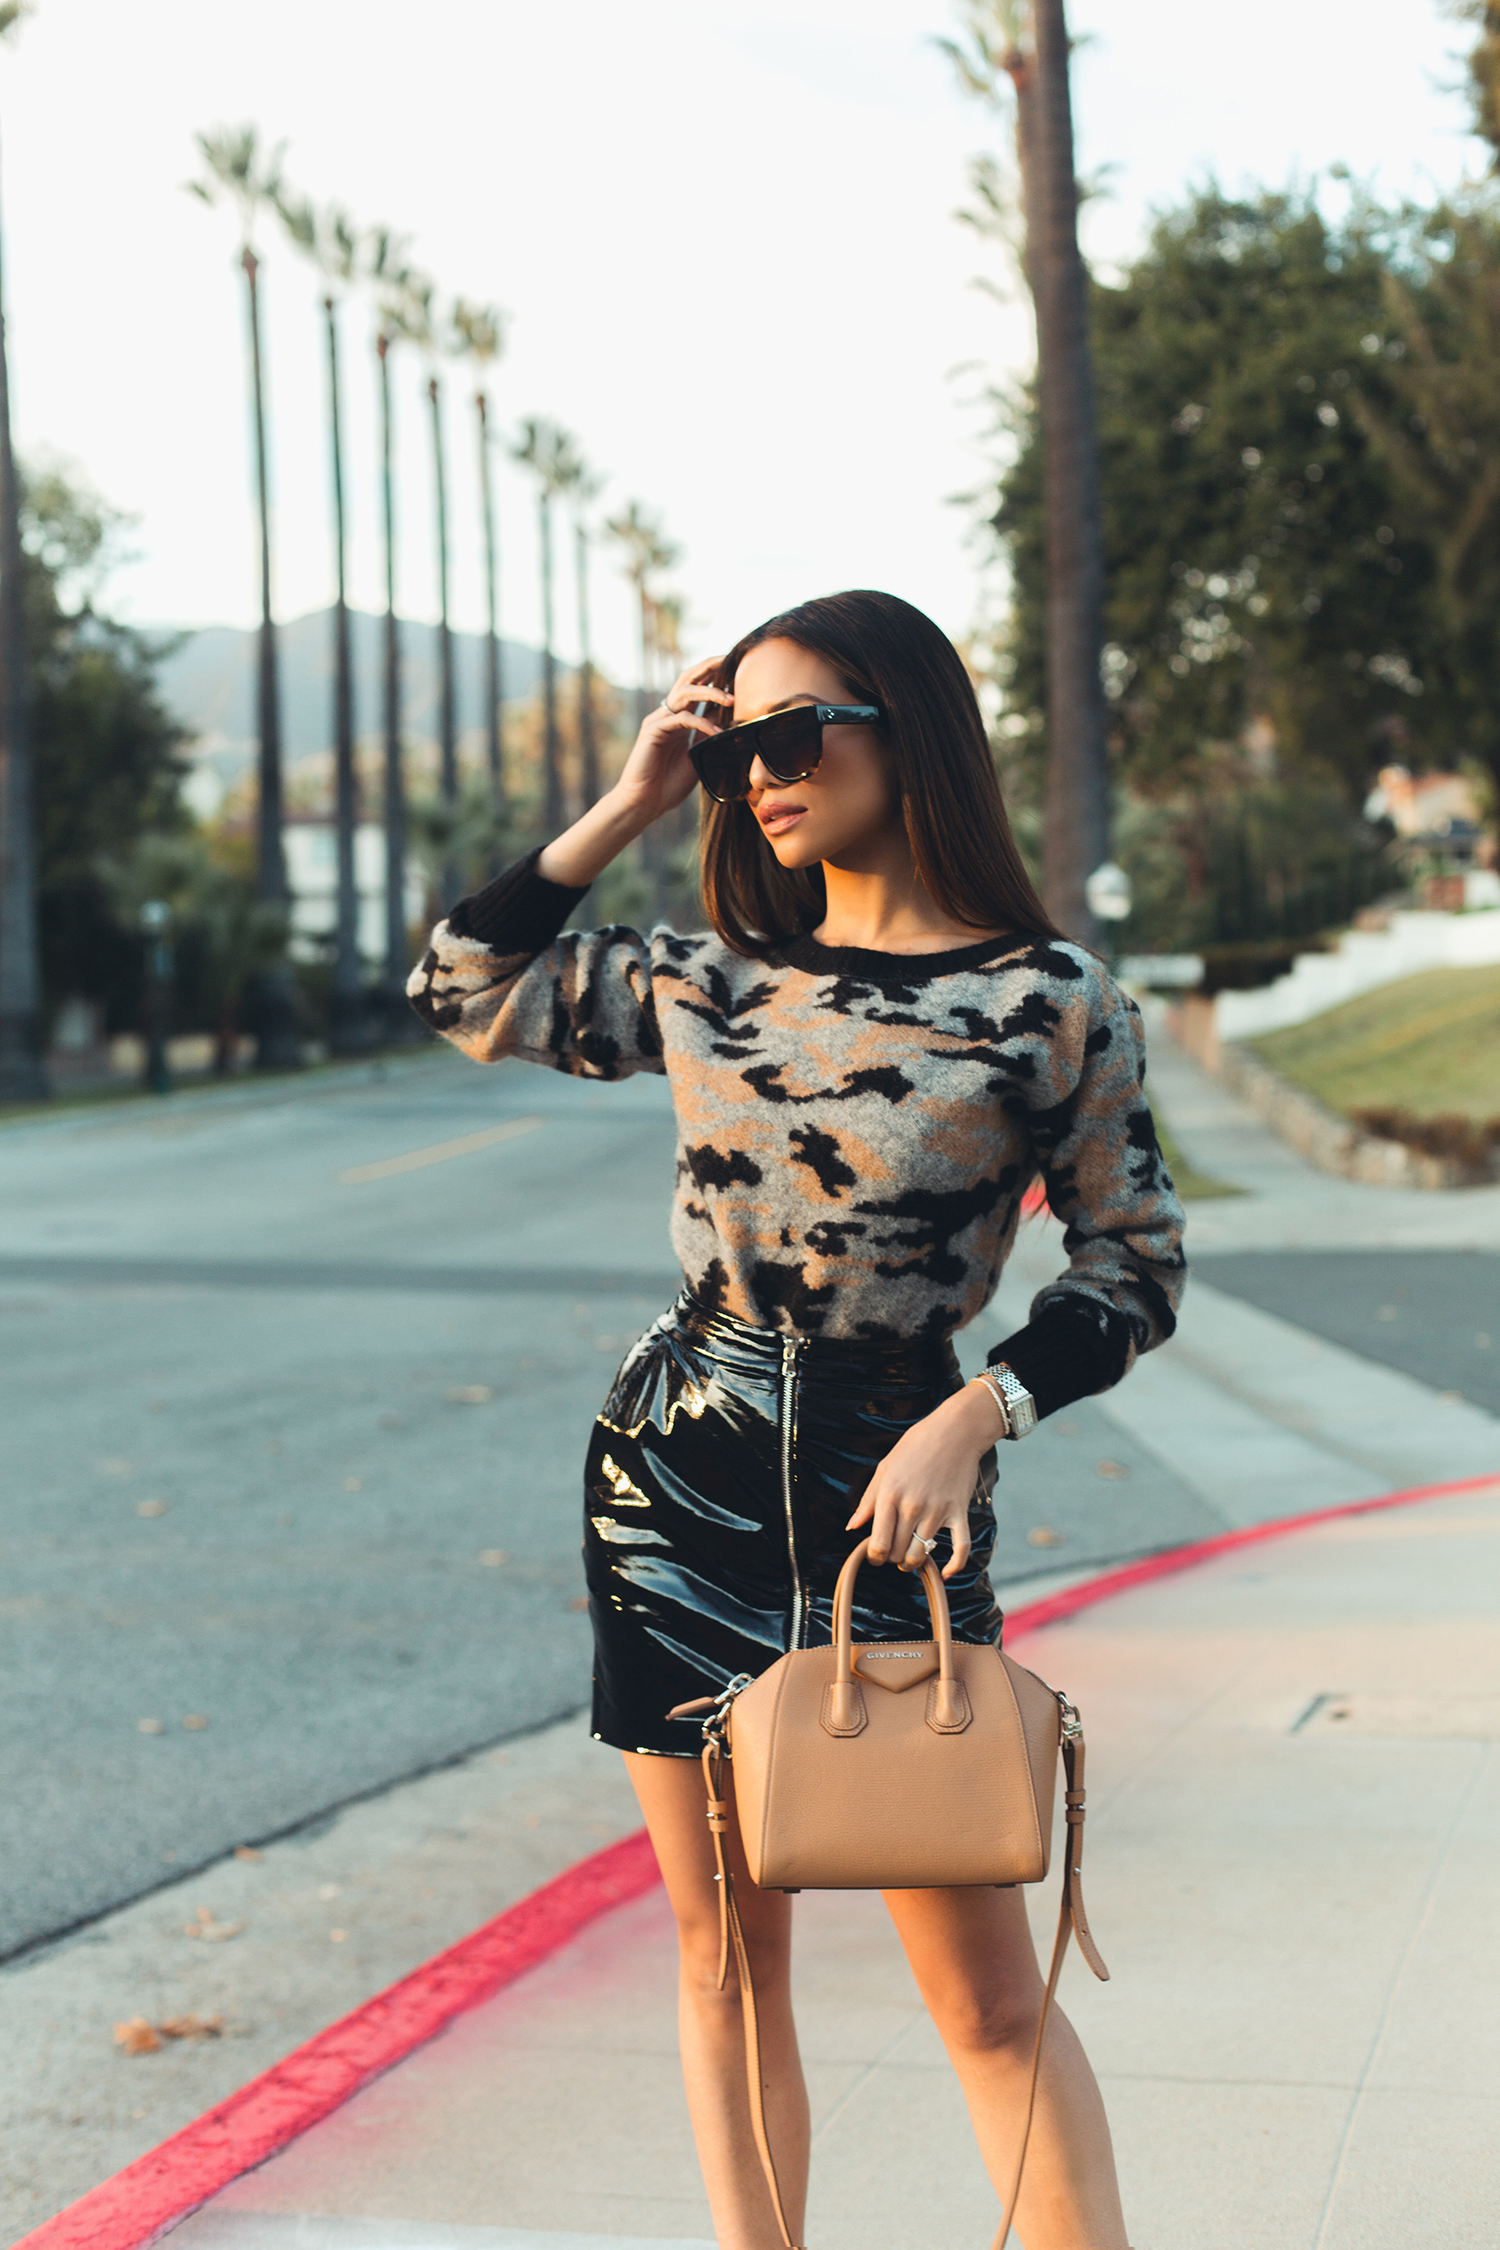 Jessi Malay wearing Givenchy Antigona Satchel